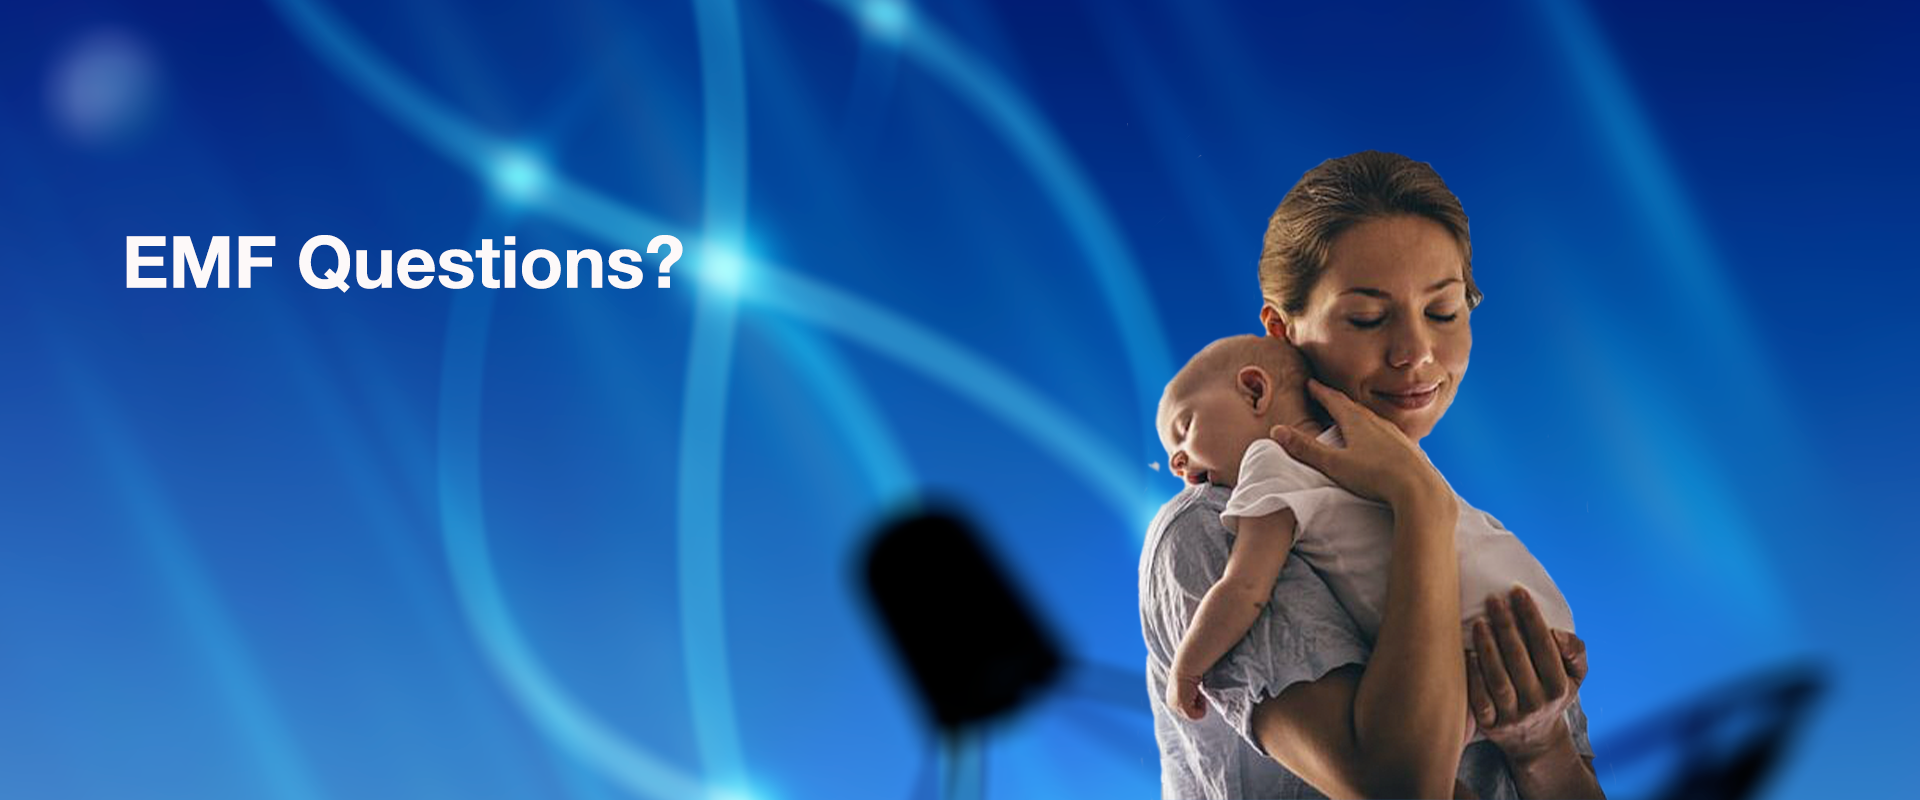 emf-questions-banner.png